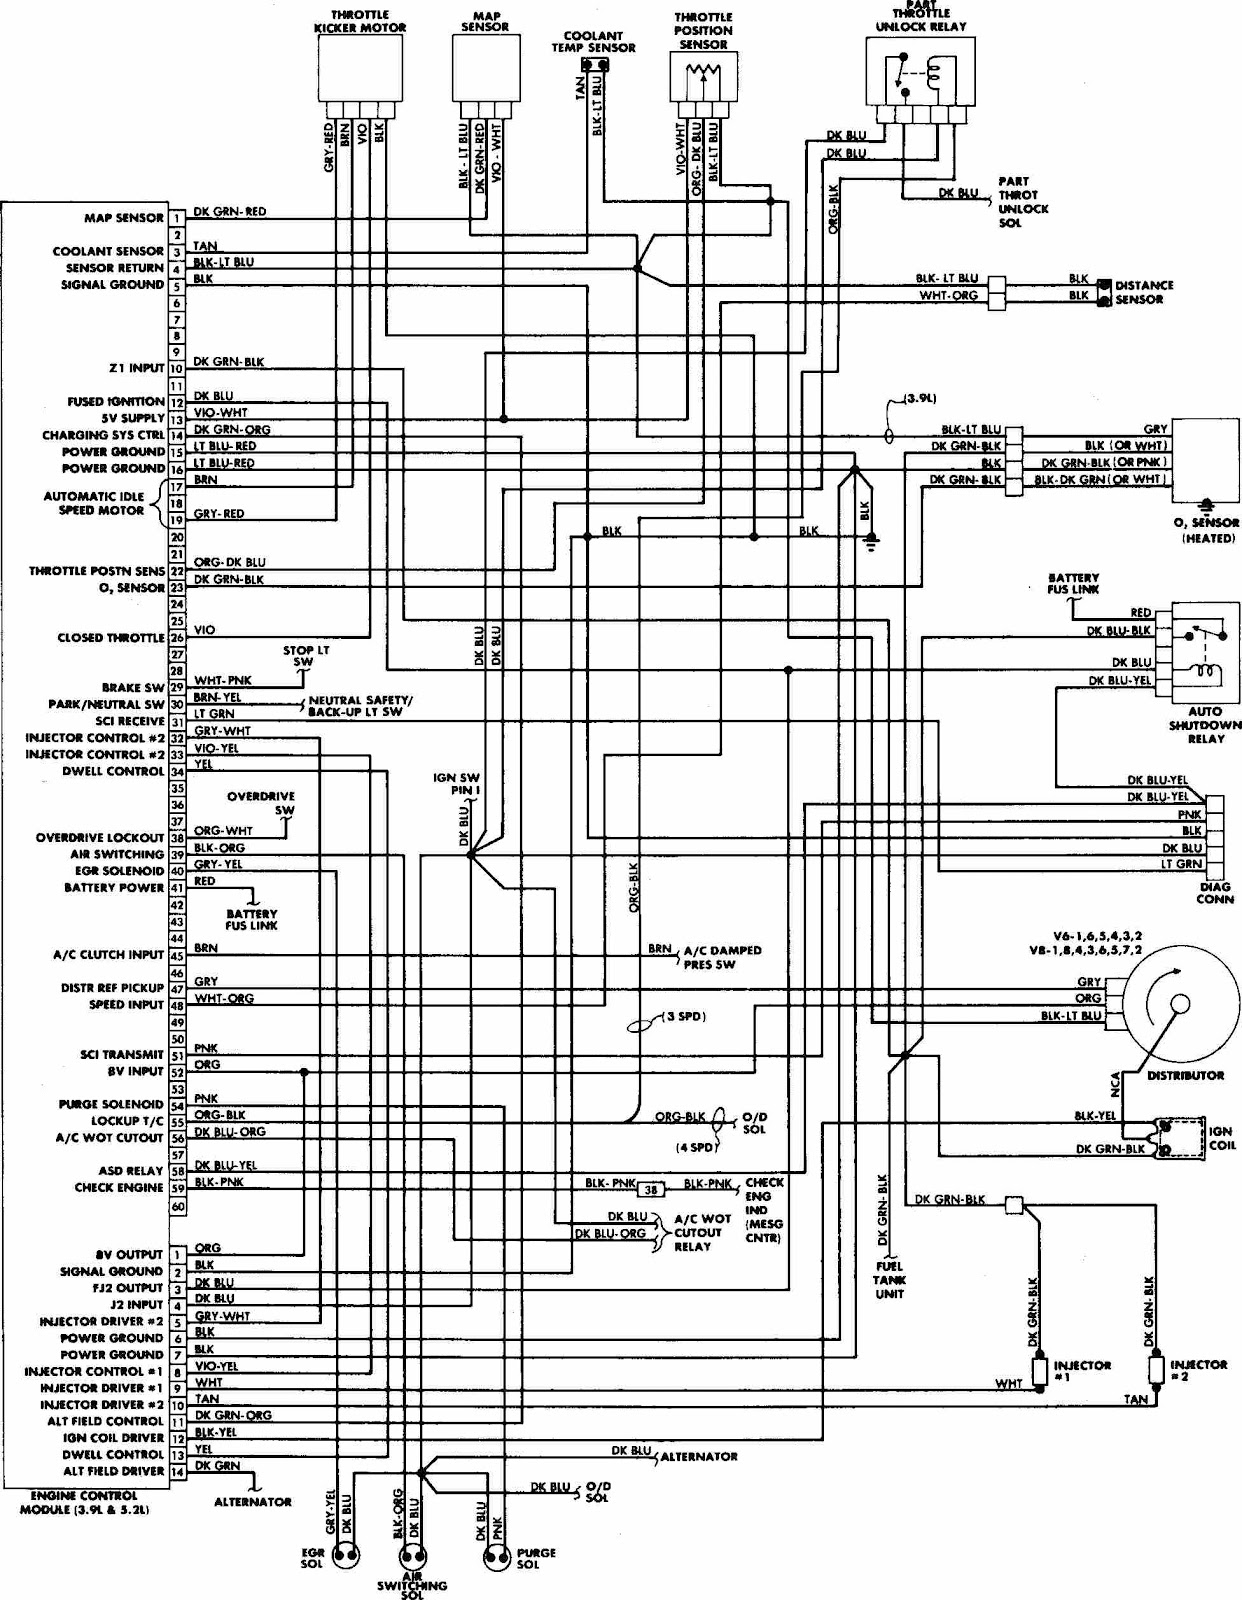 1988 dodge truck wiring diagram wiring diagram u2022 rh zerobin co 99 Dodge Ram Wiring Diagram 1998 Dodge Truck Wiring Diagram